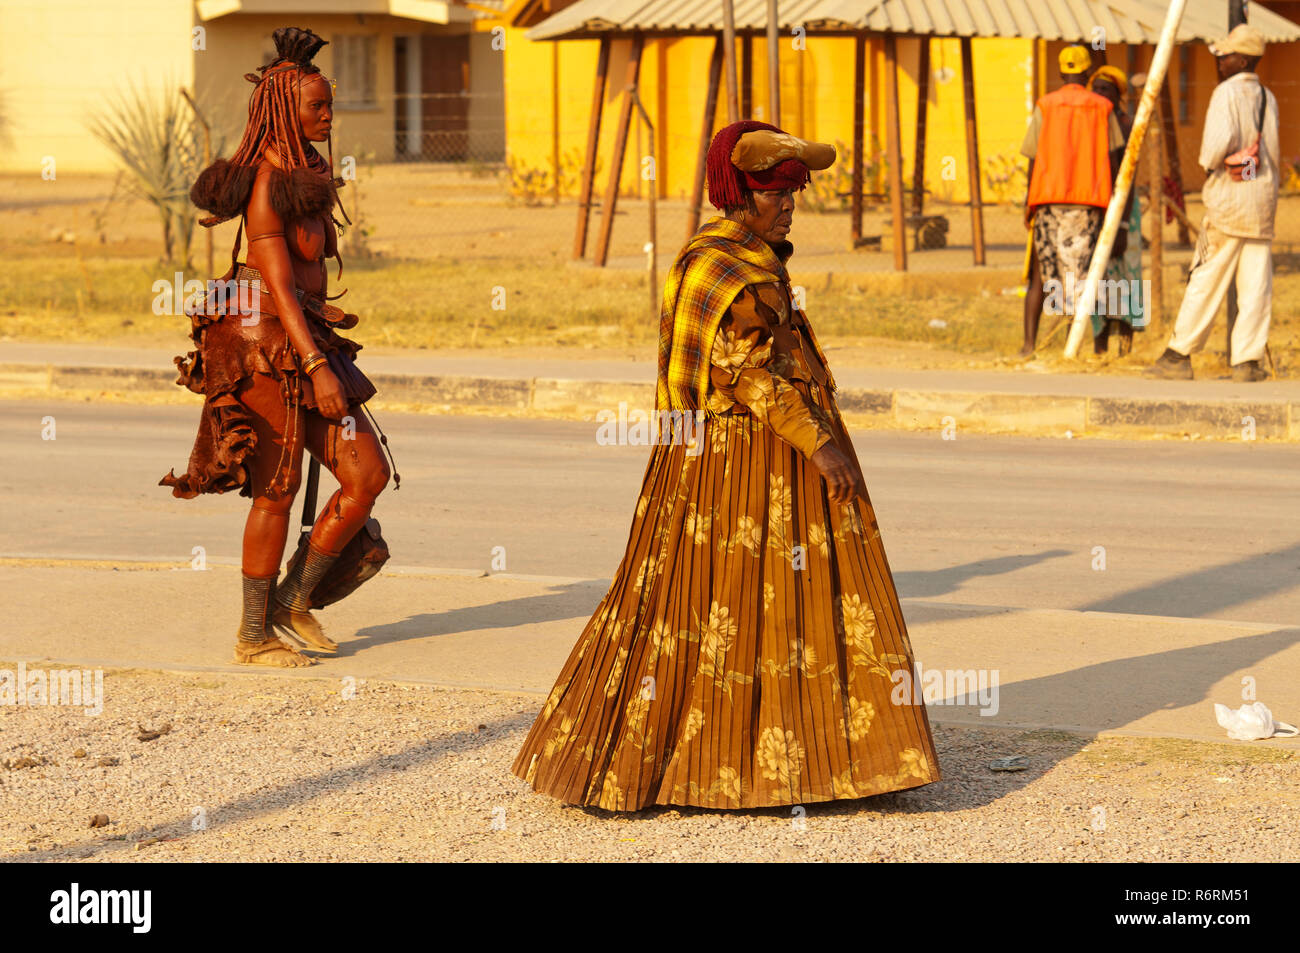 A Himba and Herero womans in full regalia walking at the streets of Opuwo, Namibia - Stock Image